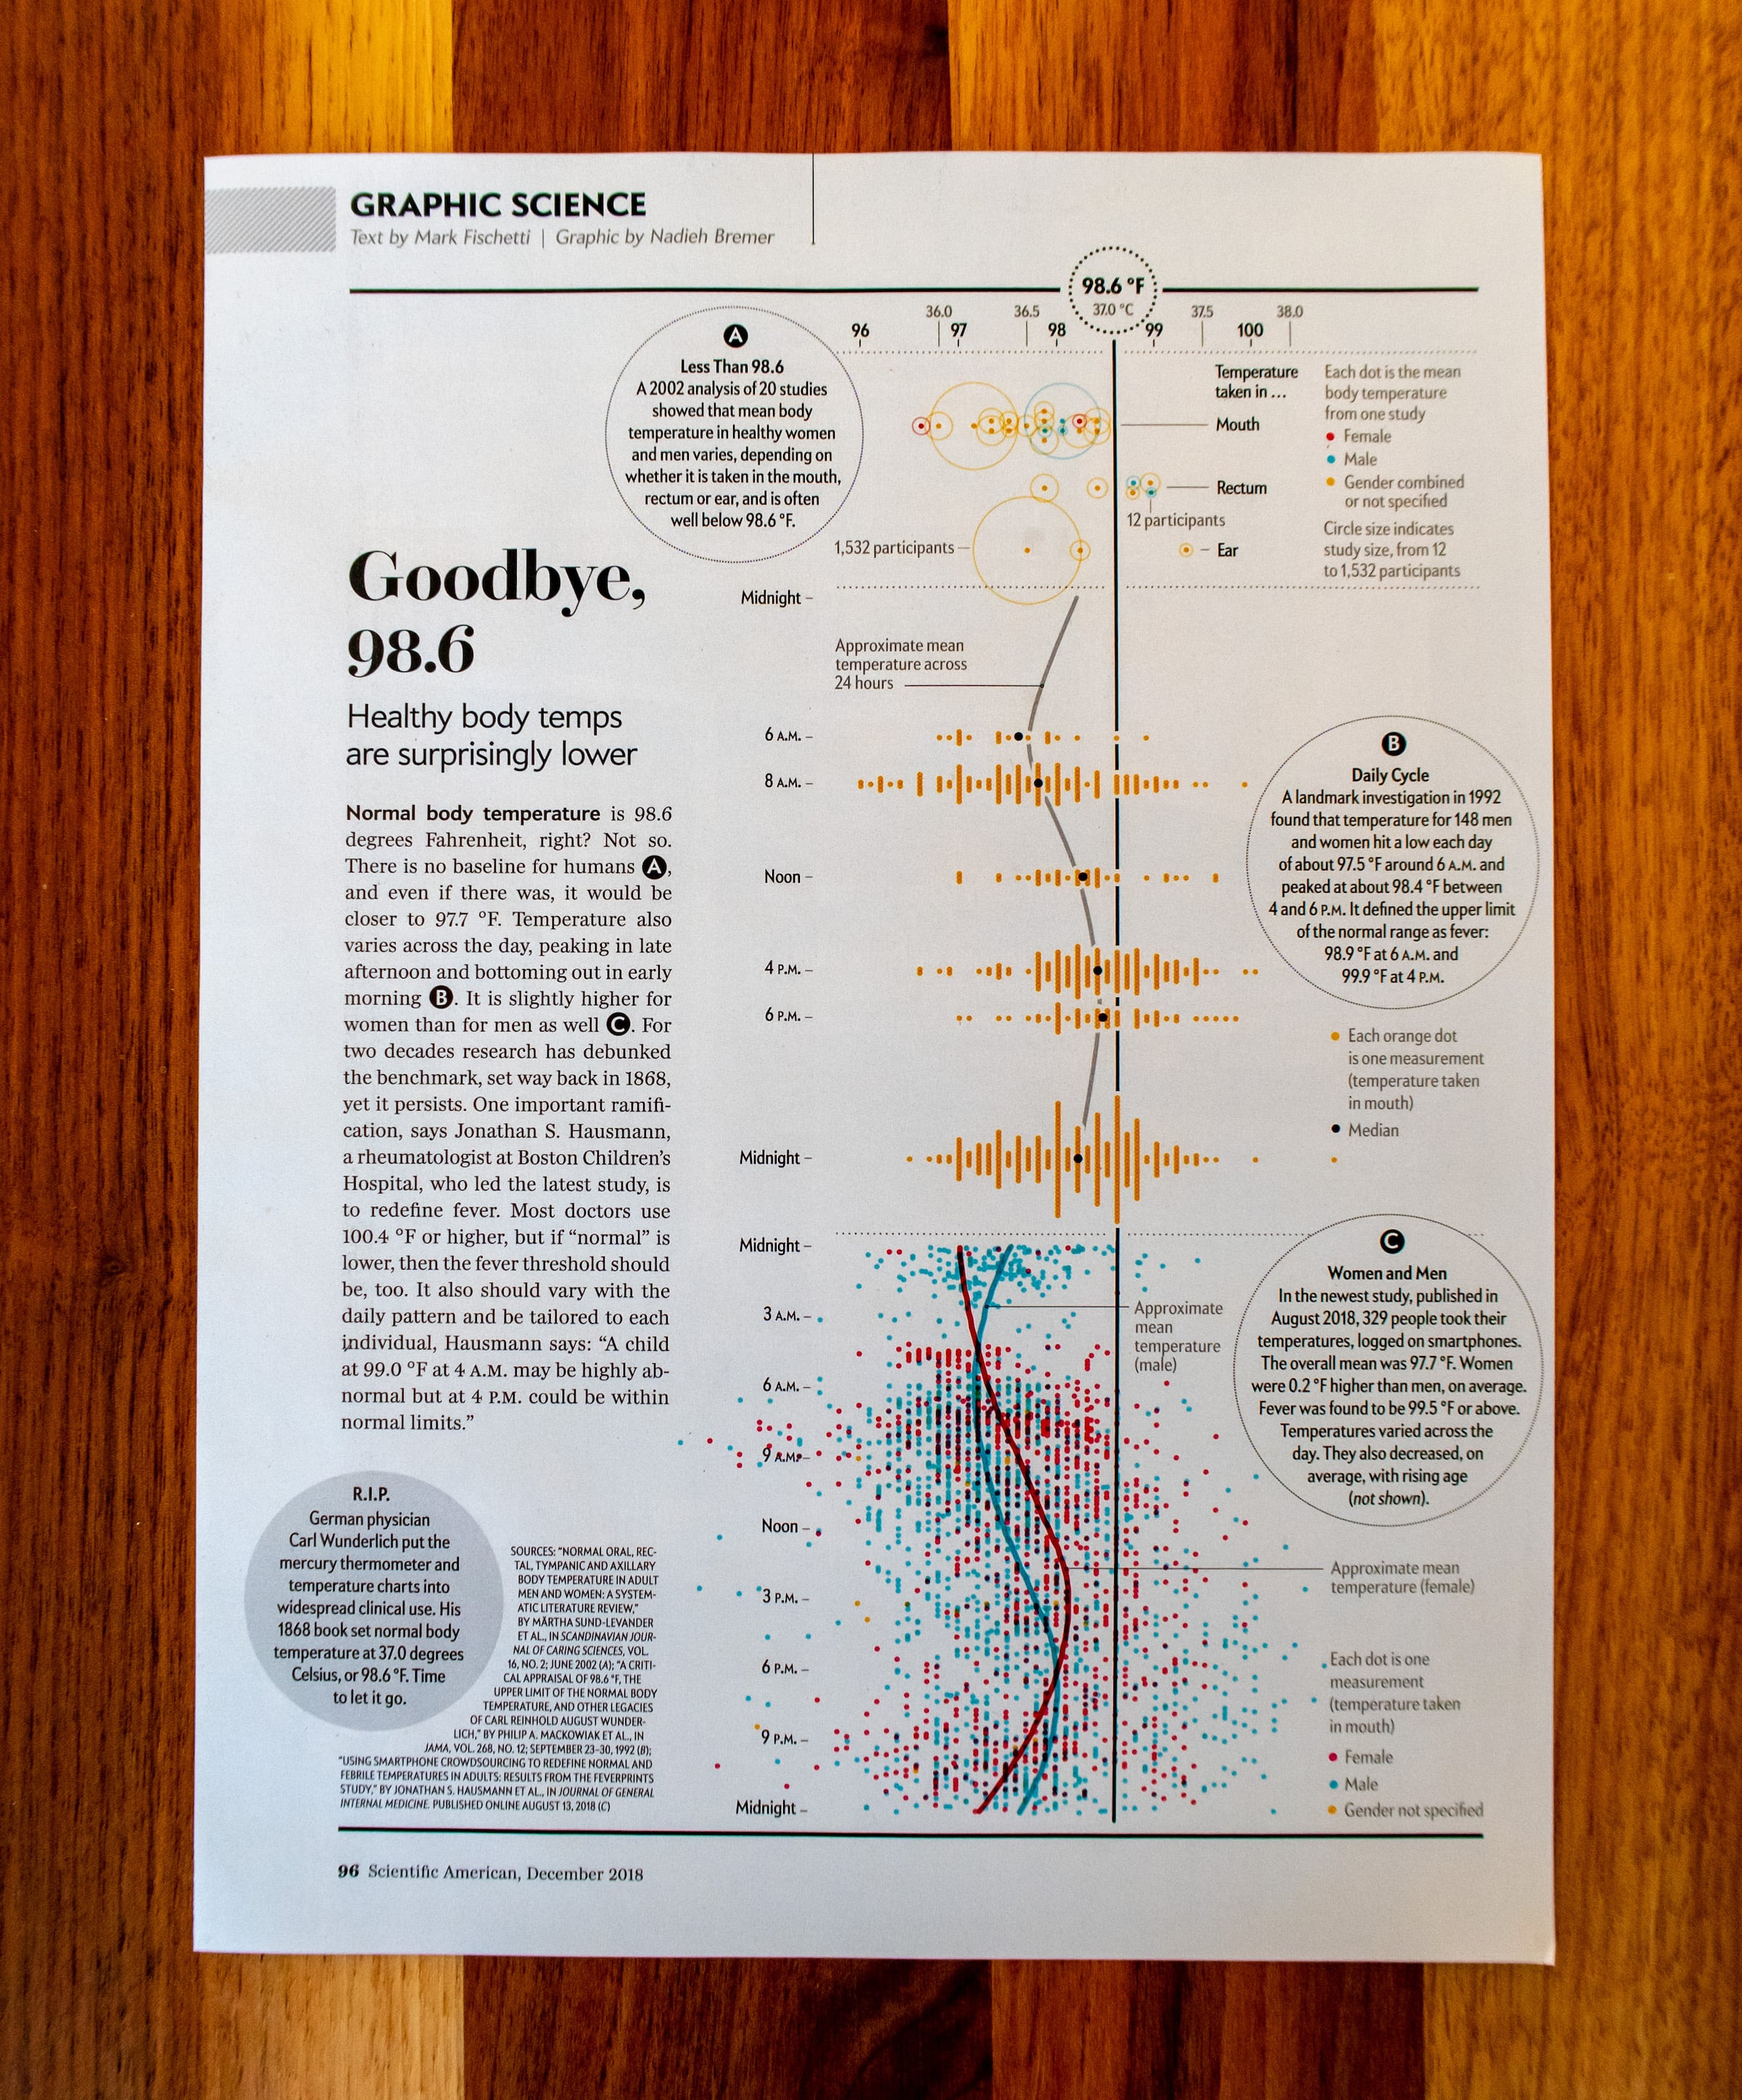 The full Graphic Science page in the December issue of the Scientific American